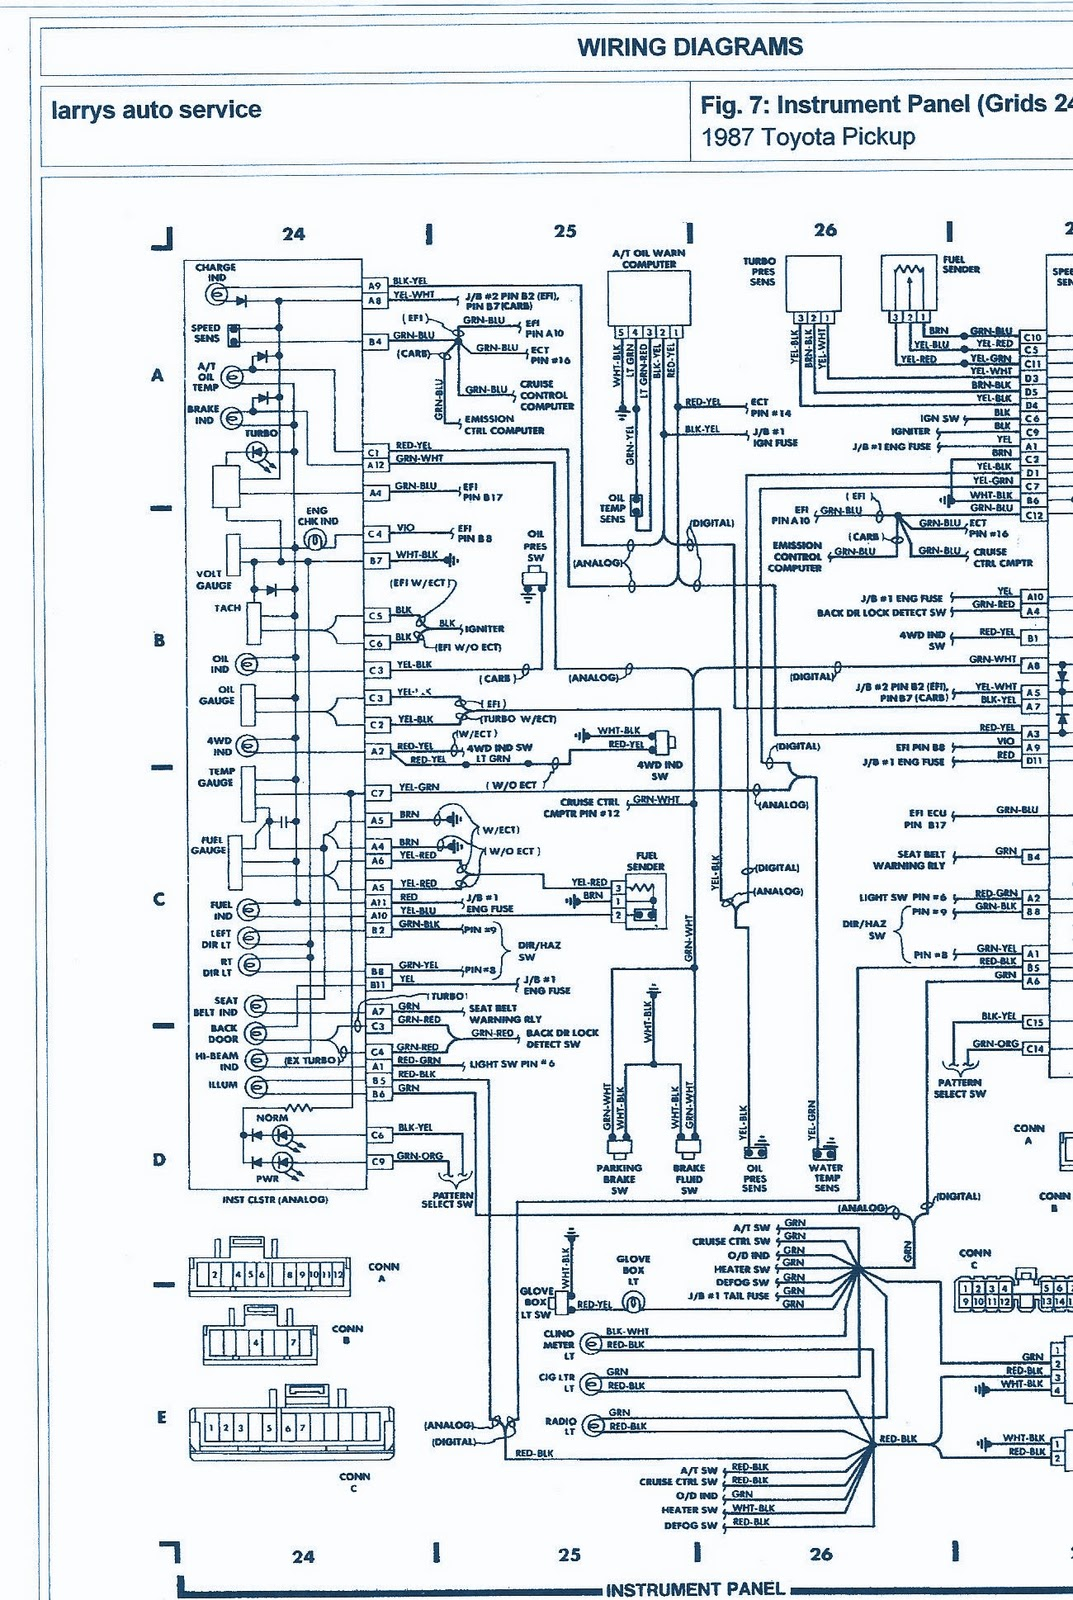 Wiring Diagram 85 Fj60 Auto Electrical Wiring Diagram 2008 Mustang GT  Engine Diagram 1985 Mustang Wiring Diagram Engine